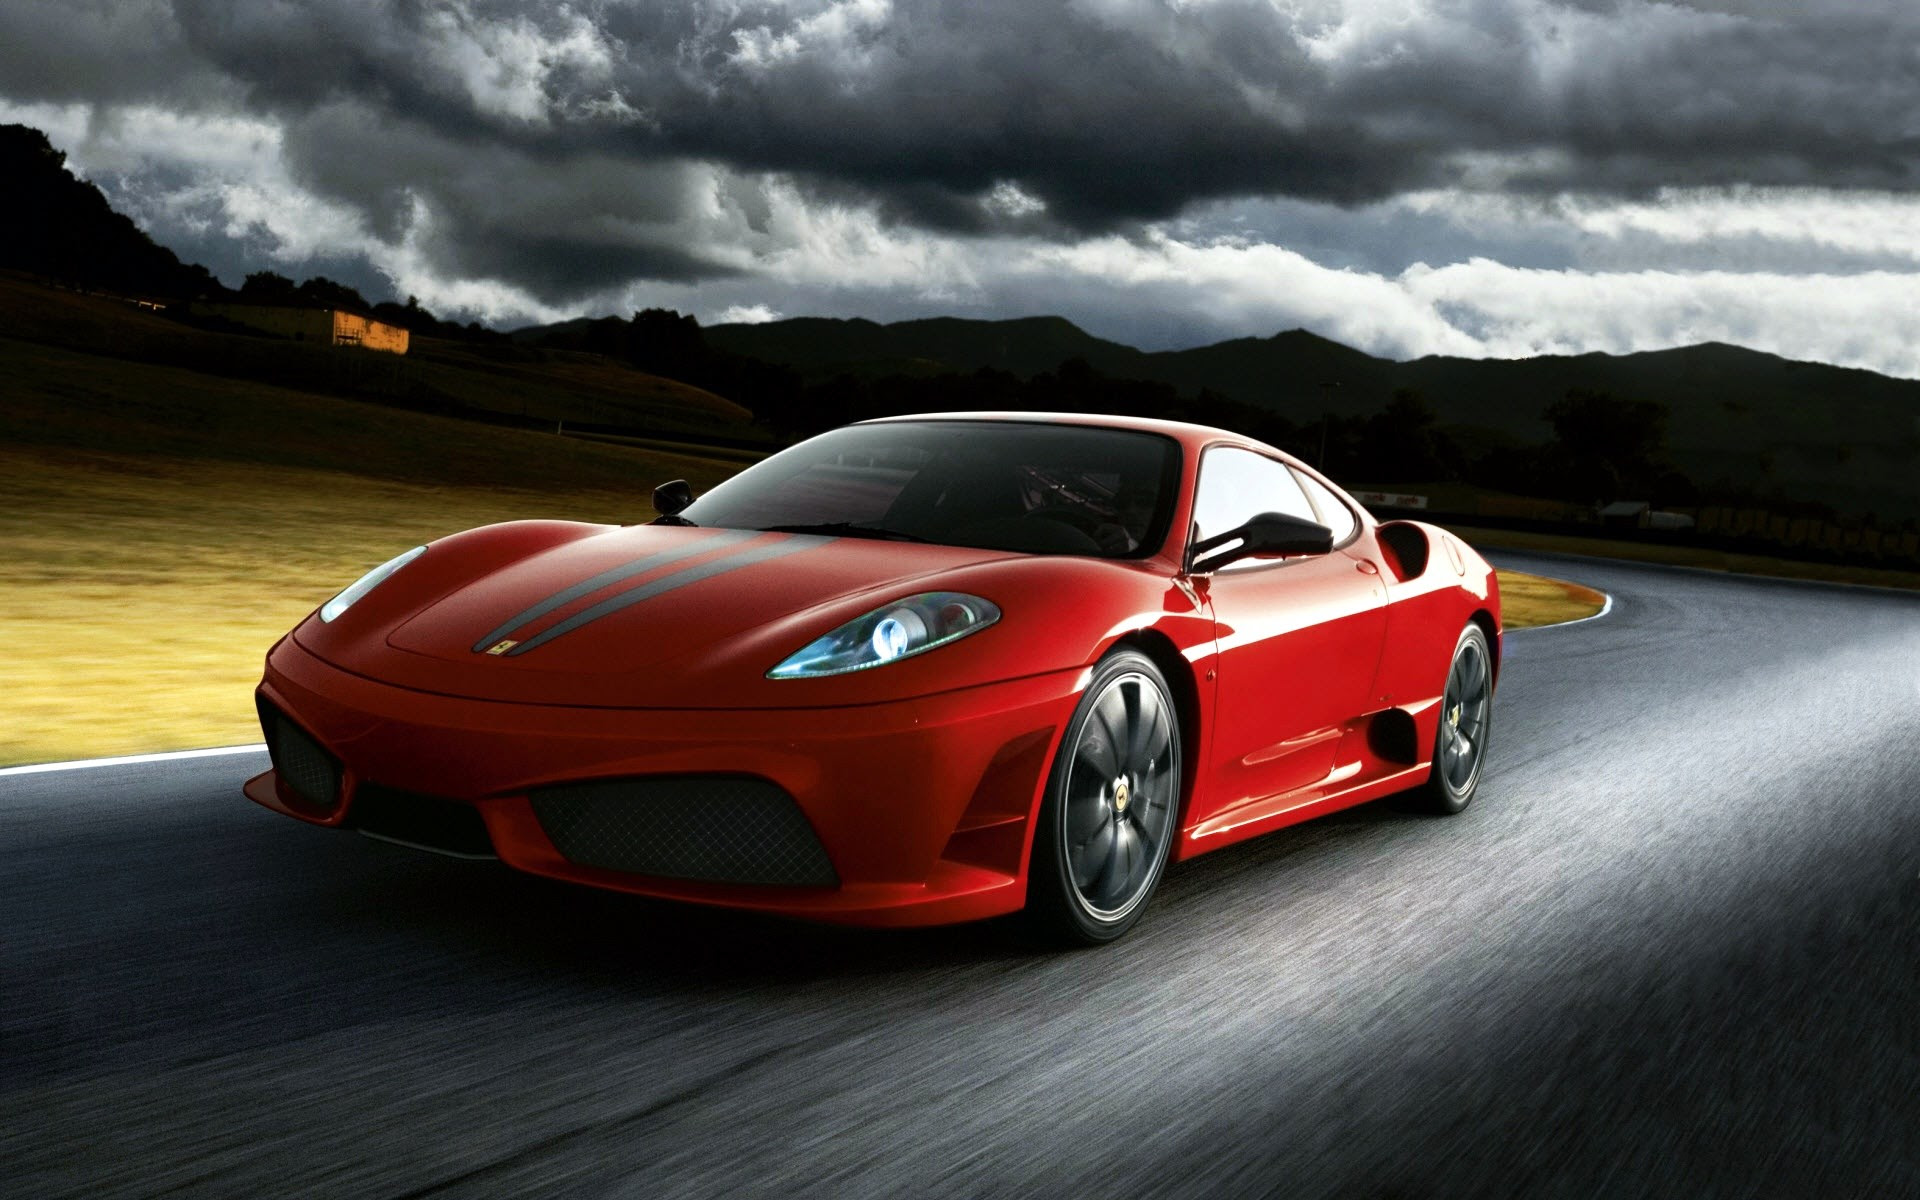 Wallpaper Android Ferrari A1 Wallpaperz For You